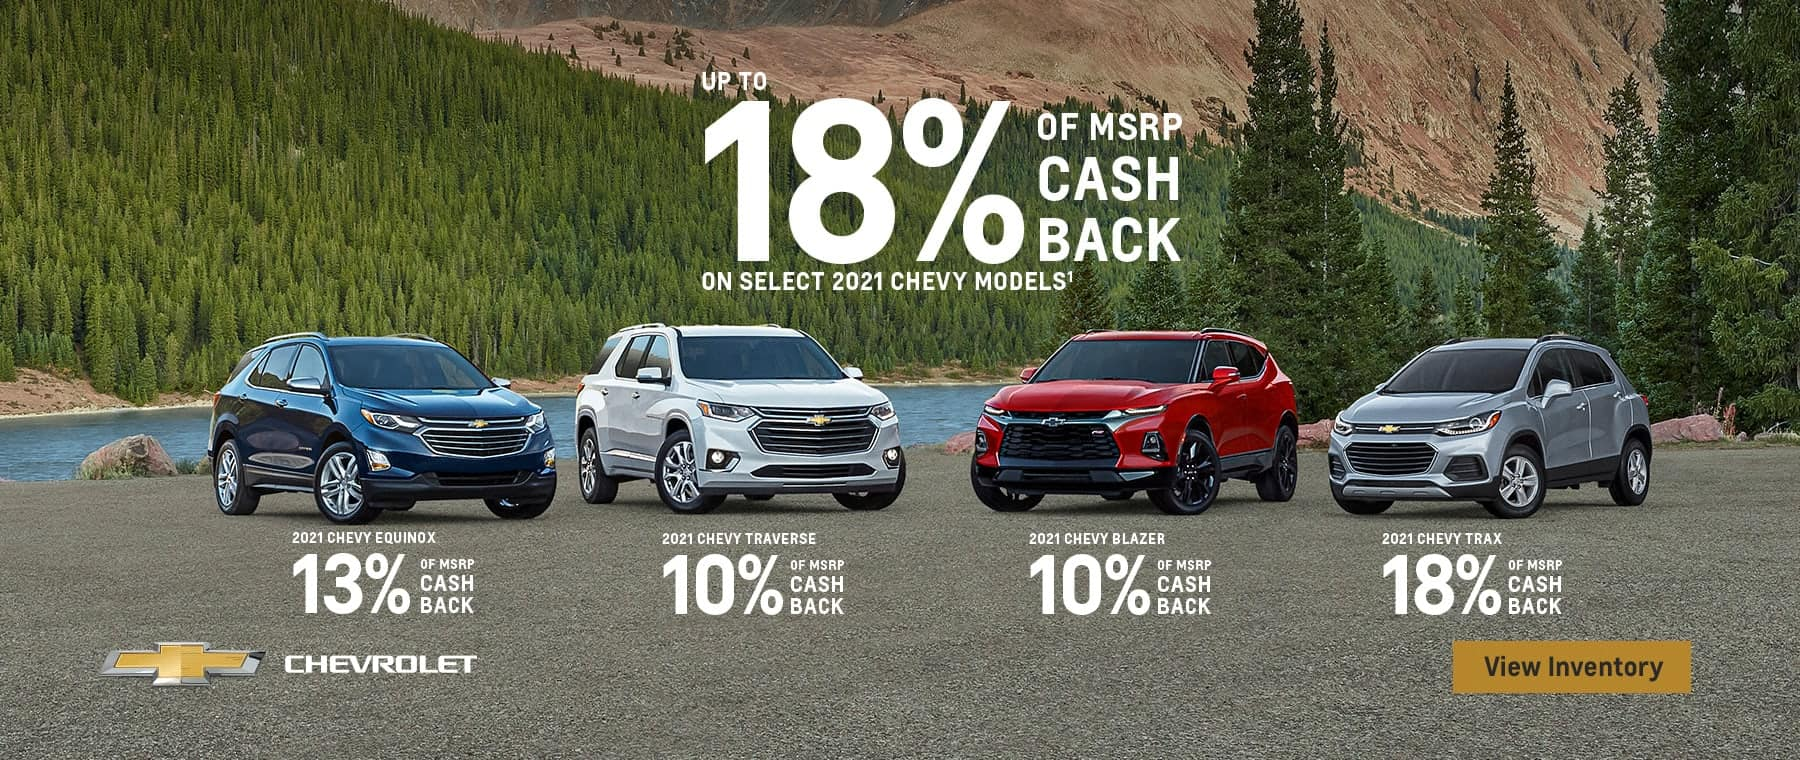 Up to 18% of MSRP cash back on select 2021 Chevy models.